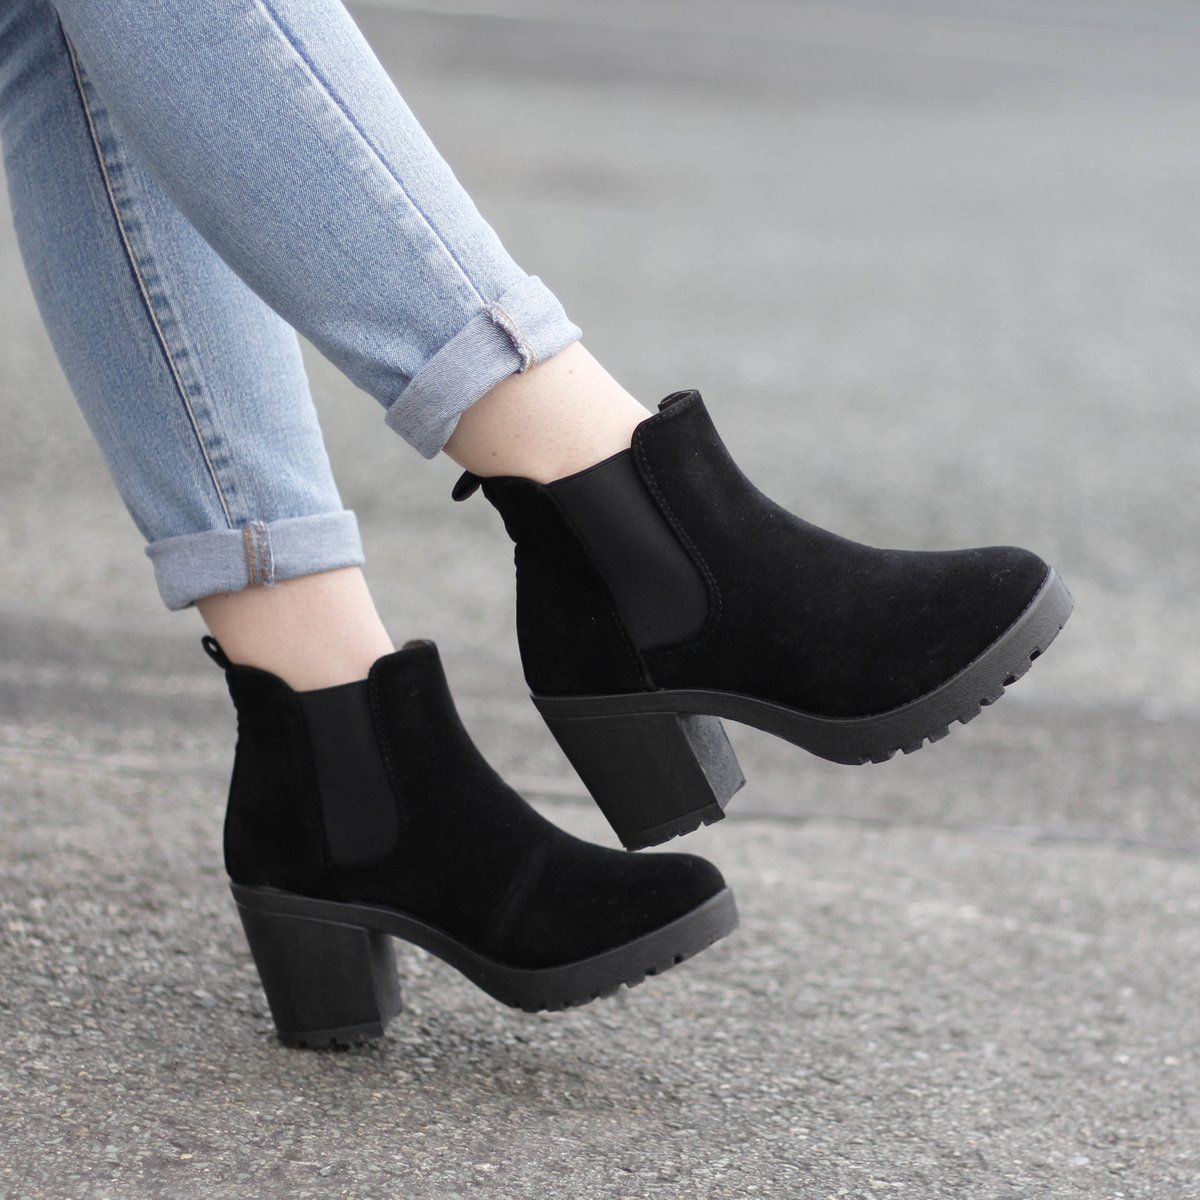 7b5ea3e62 cUTE black suede boots for winter - jean + black boot outfits are perfect  to throw on when in the rush AND still look bomb! Korky s Shoes IRE on  Twitter  ...